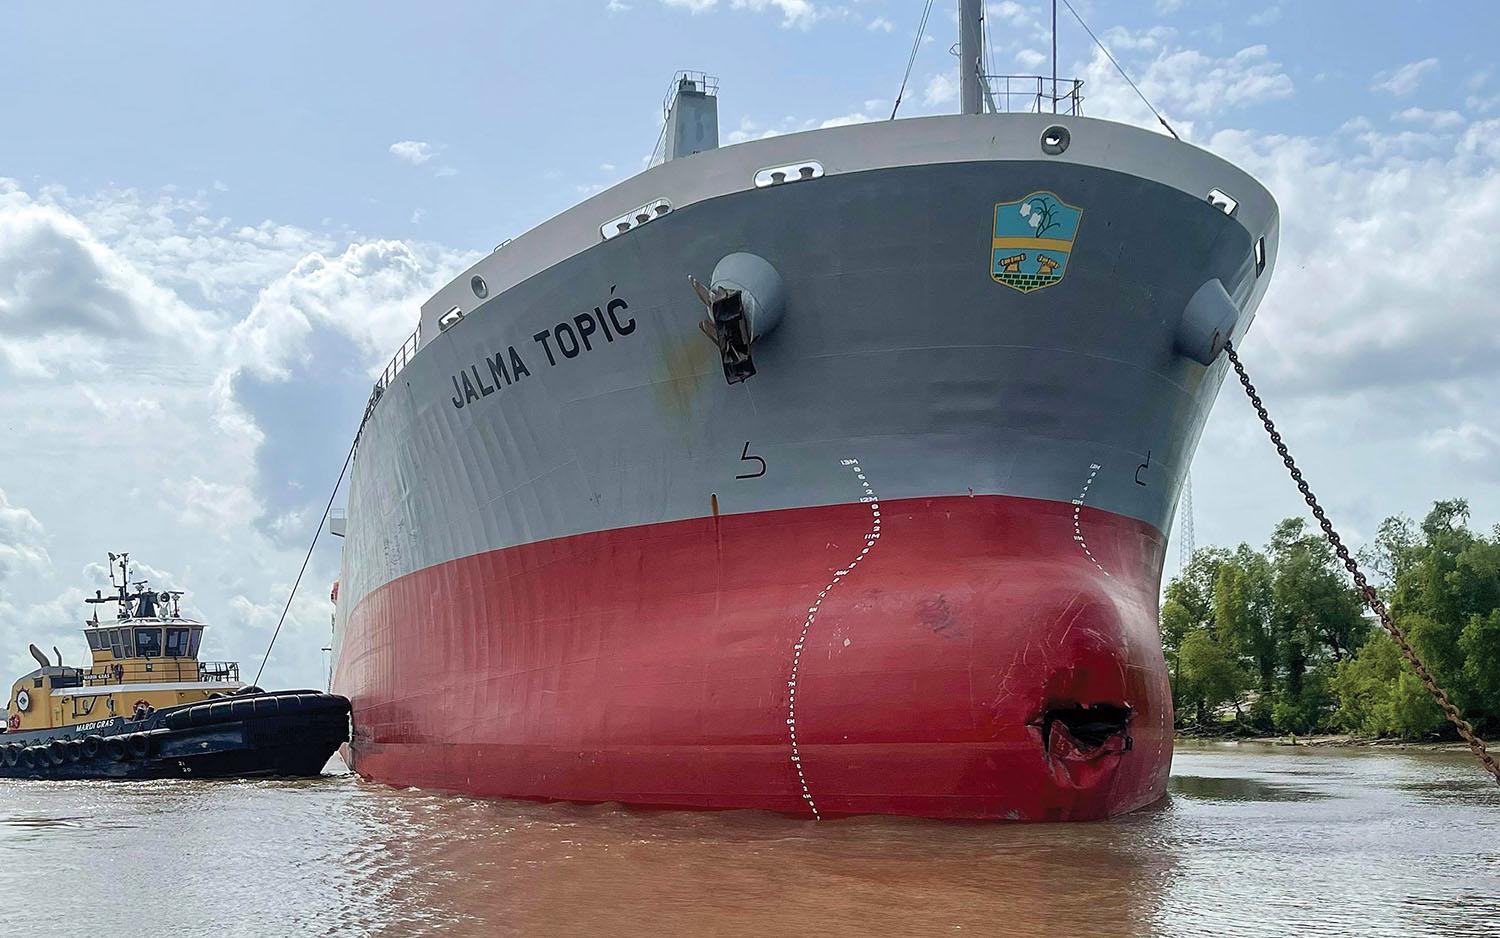 Ship Loses Steerage, Allides With Crescent Towing Office Barge